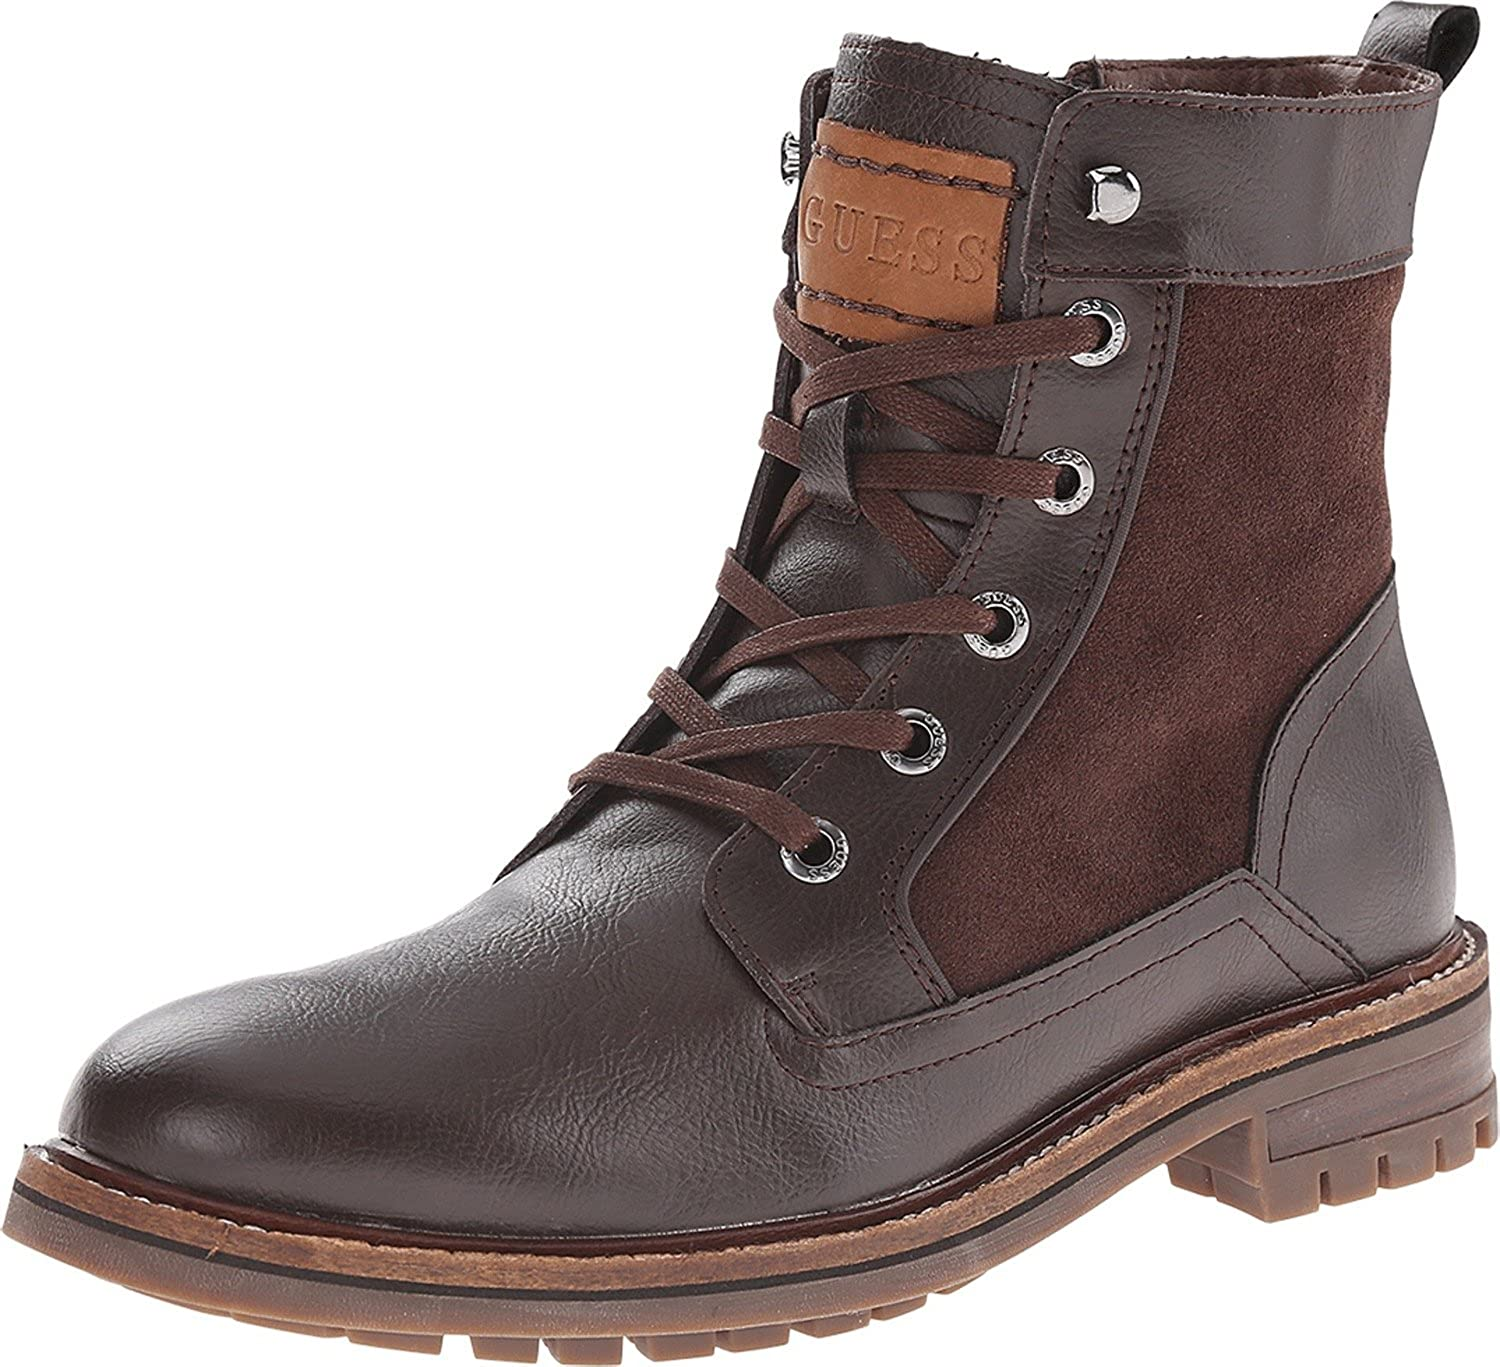 Mens Boots GUESS Reid 2 Brown